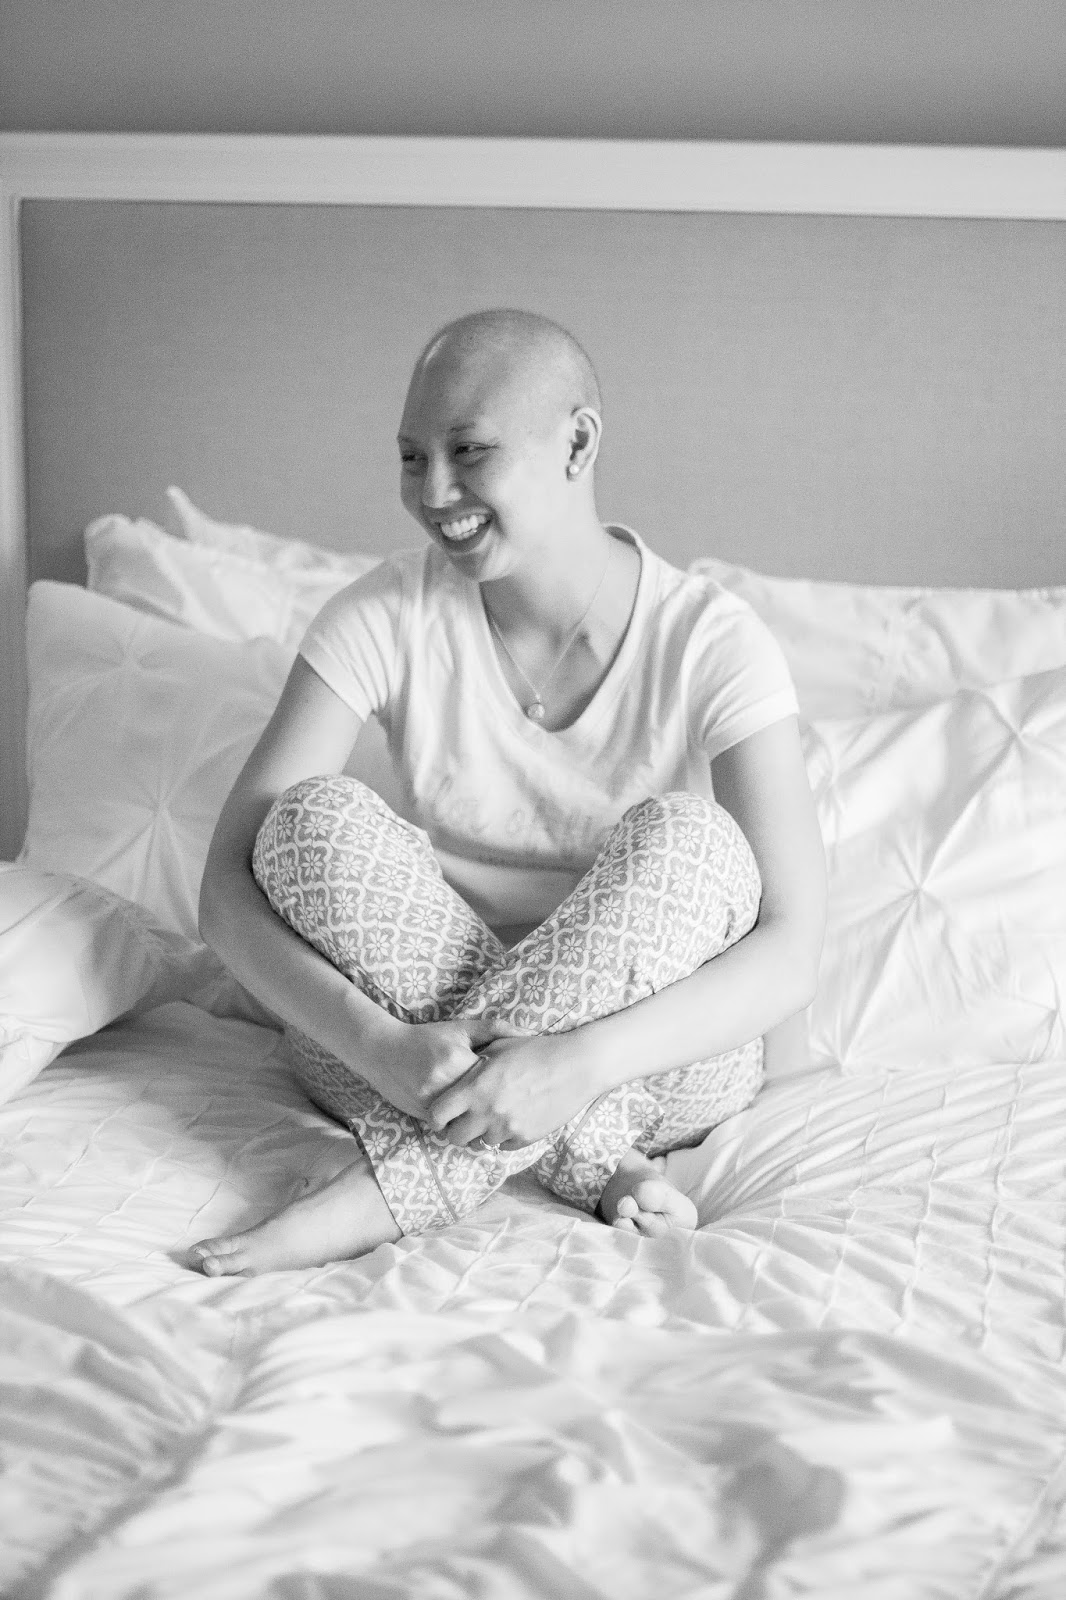 12 Things Cancer Taught Me